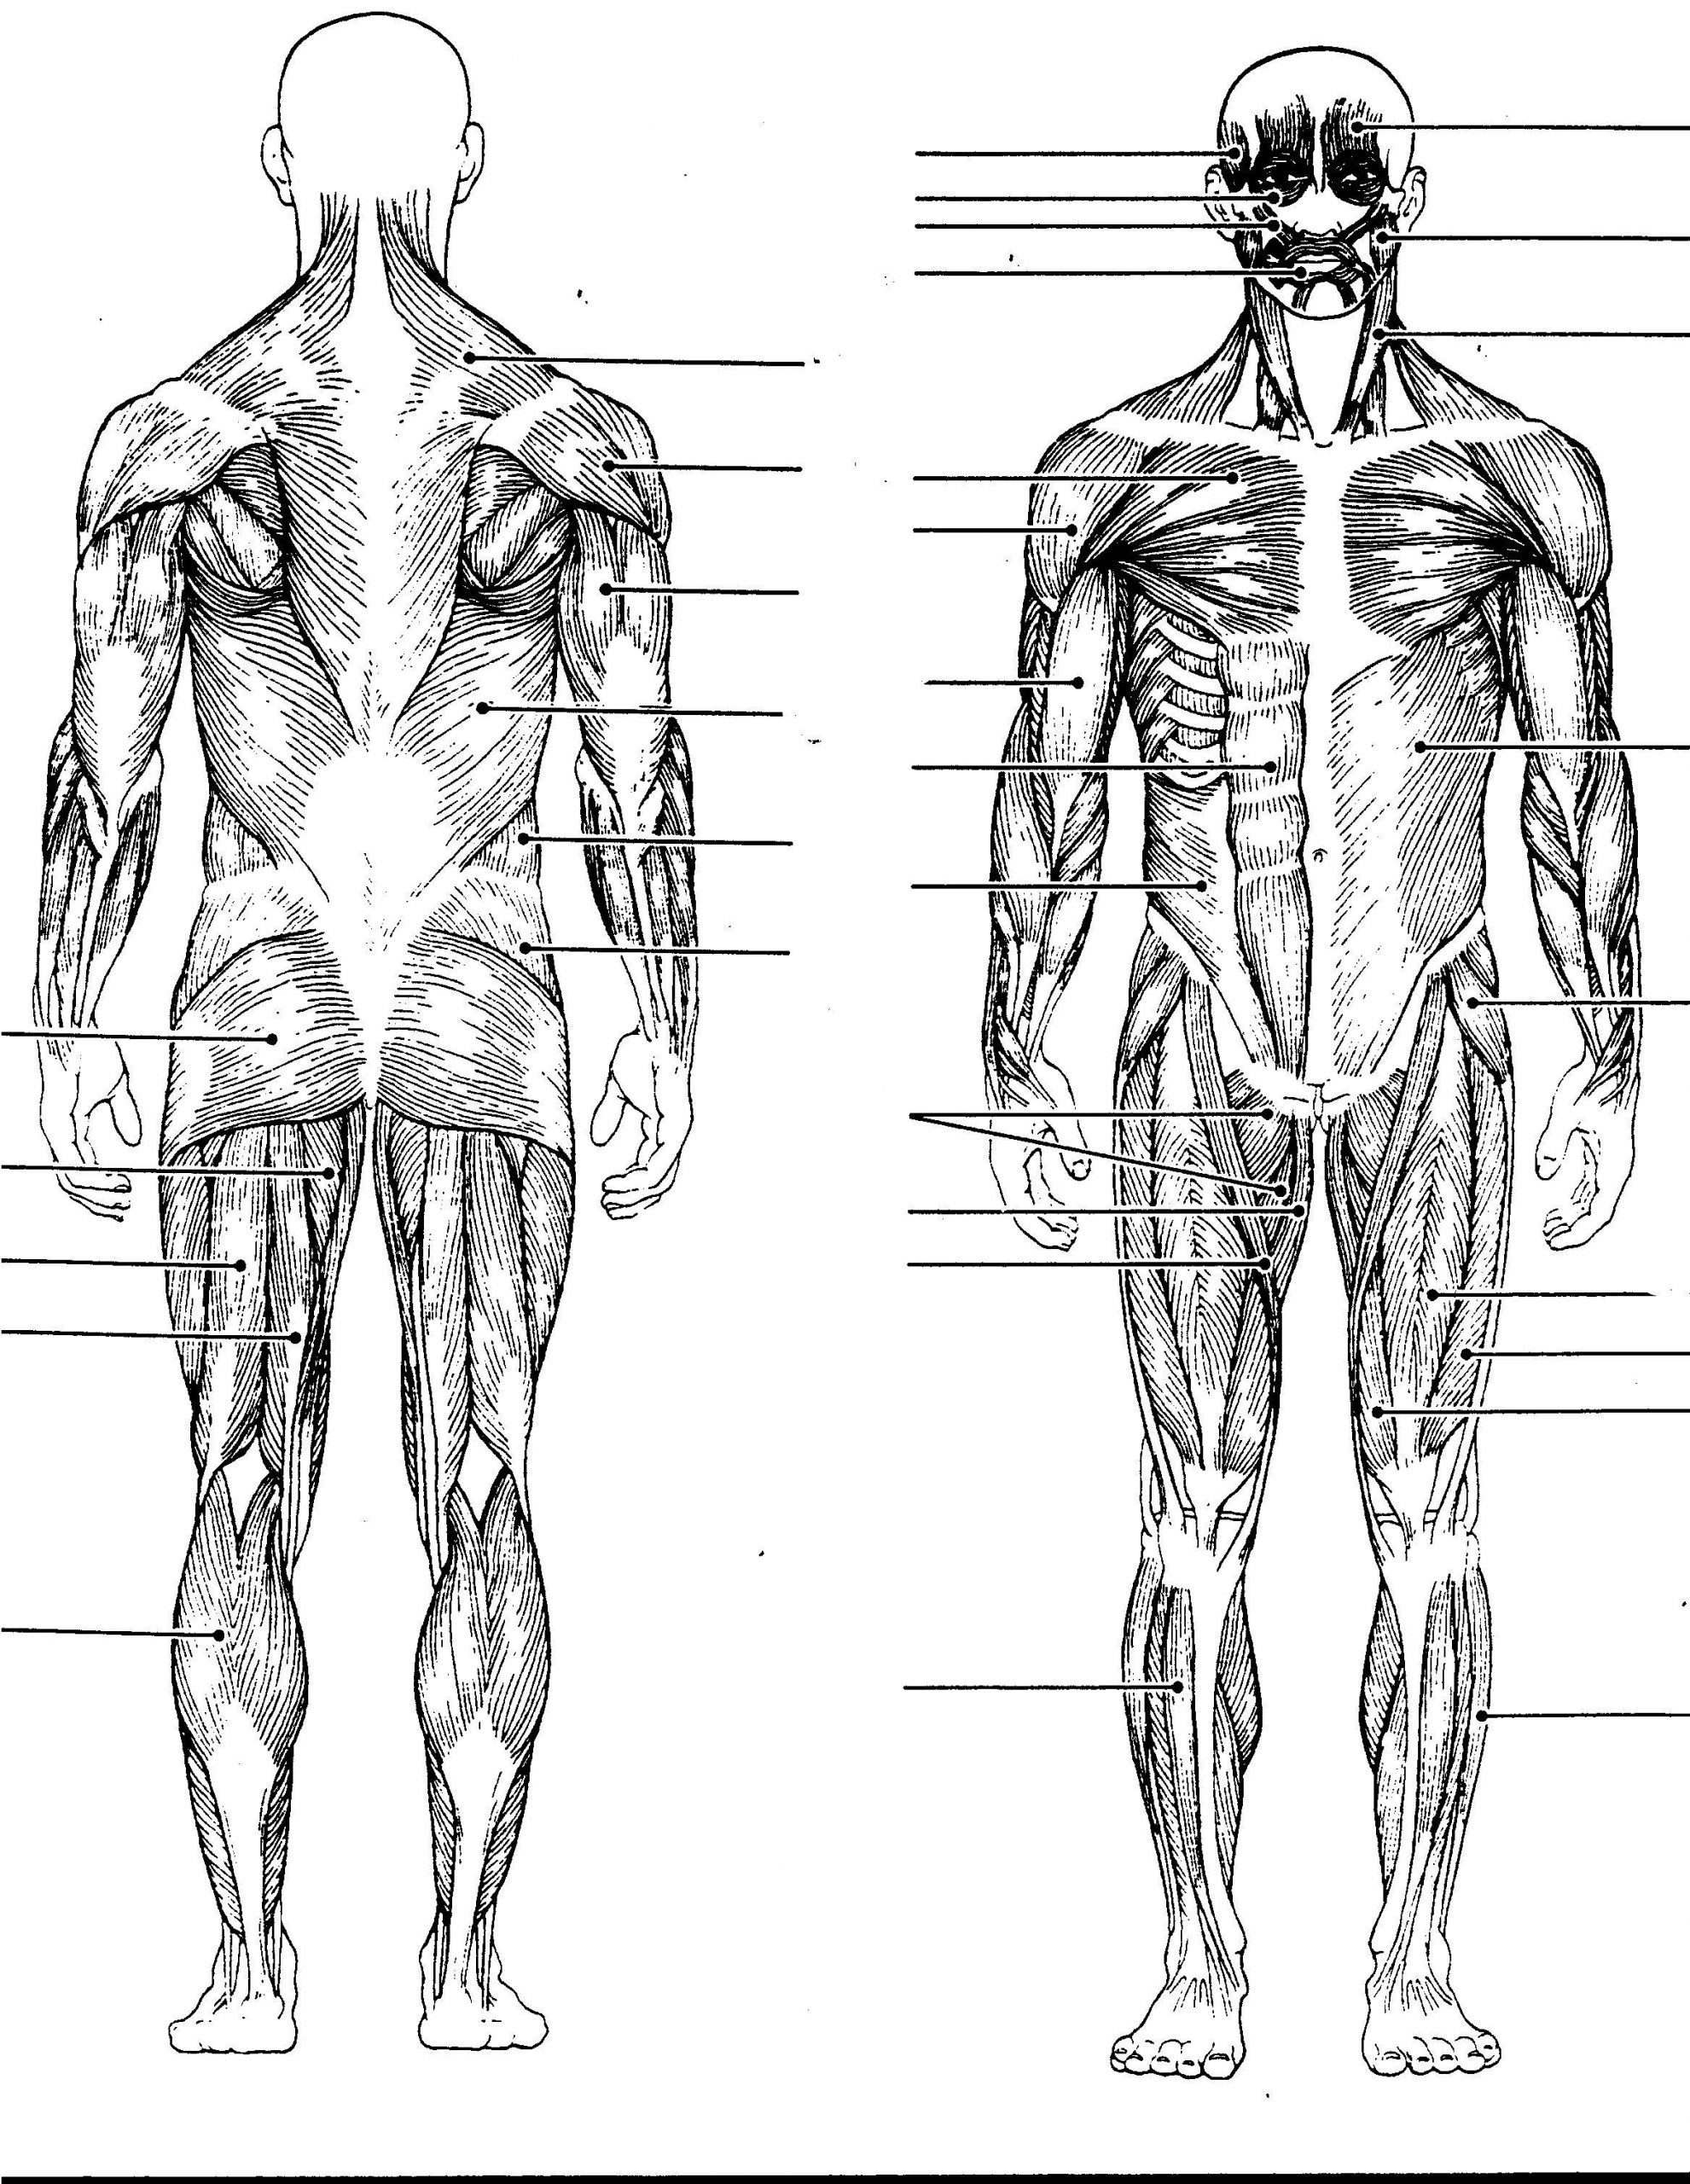 Blank Muscle Diagram Worksheet Muscular System Diagram Blank Muscular System Diagram with